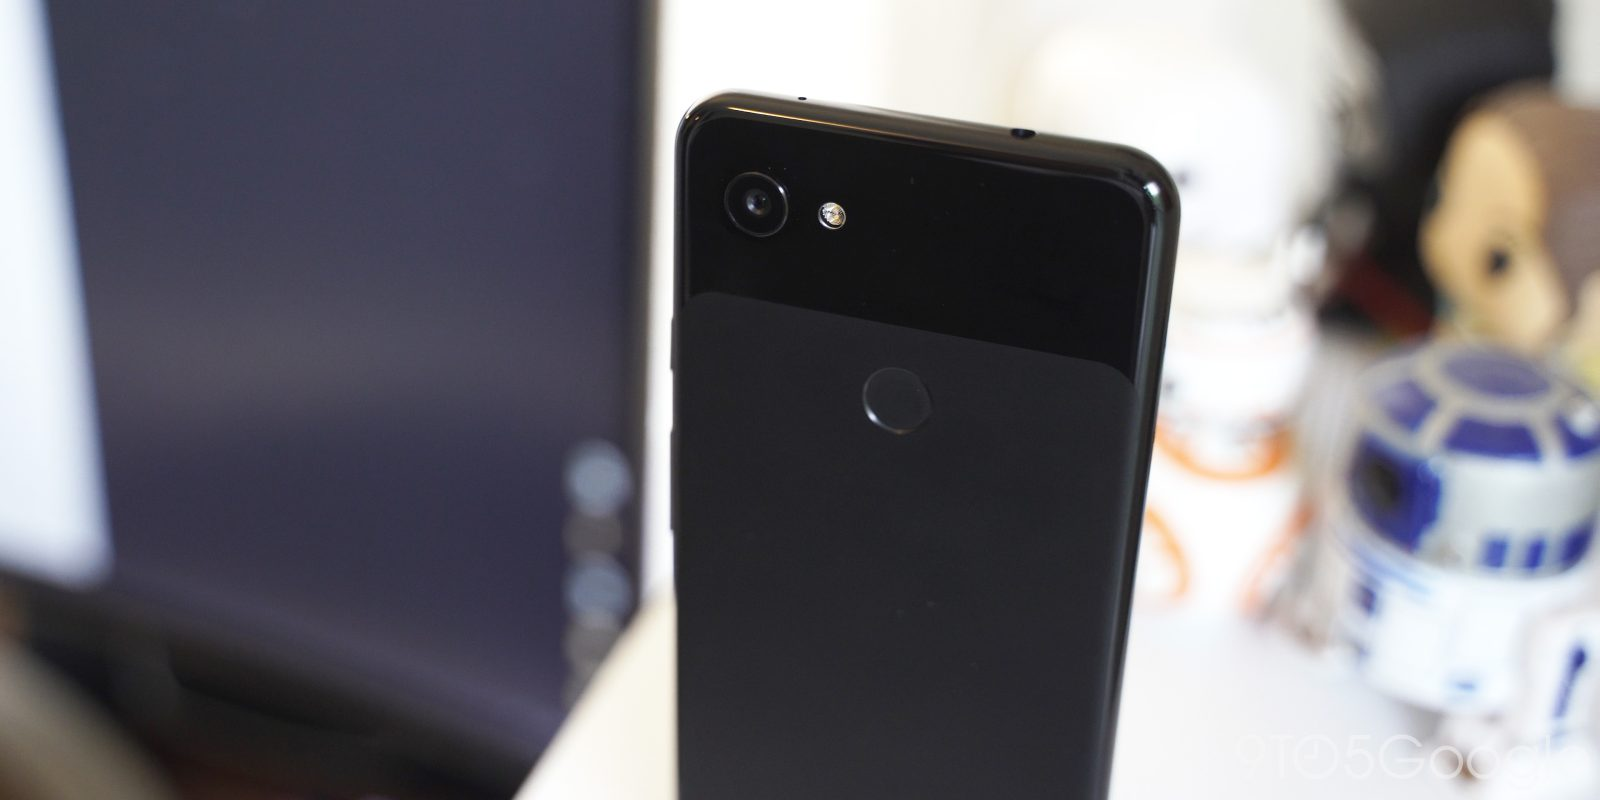 Best Pixel 3a Deals Anker Accessories And More Are On Sale 9to5google